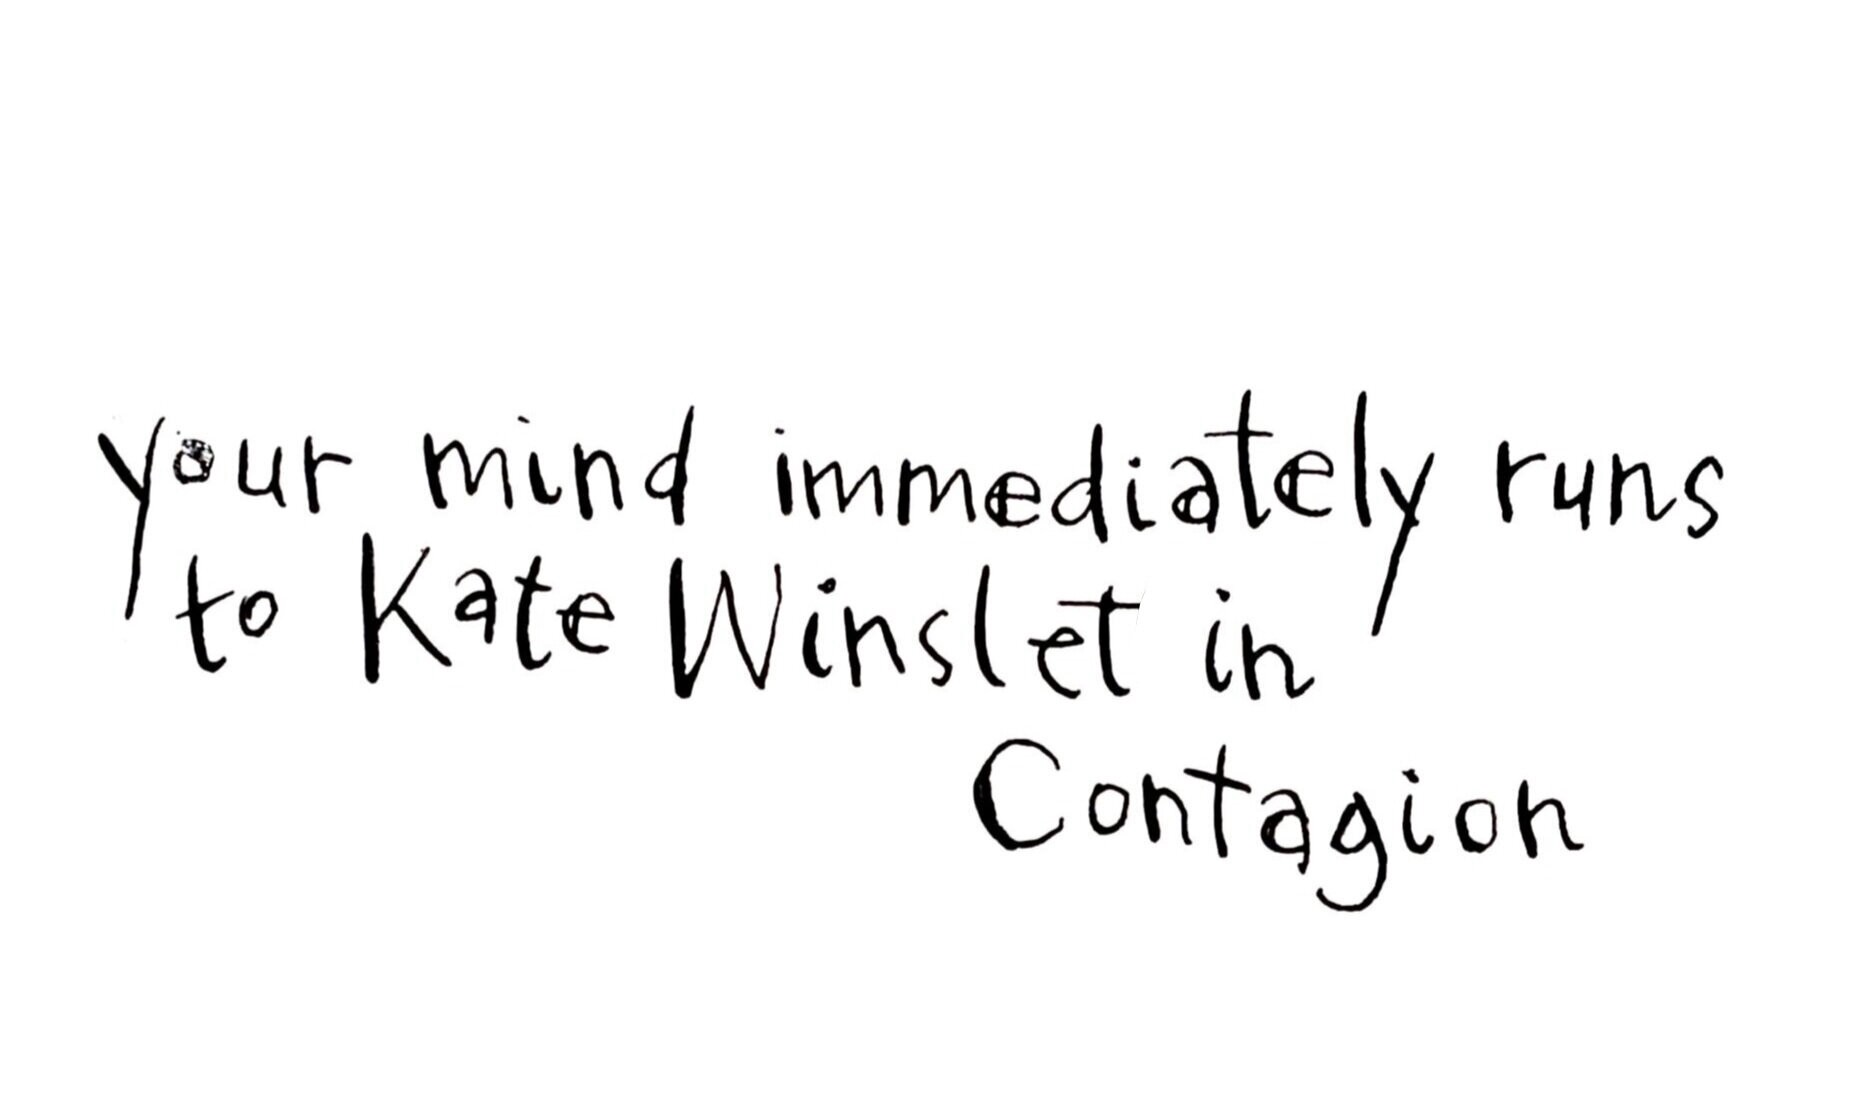 Your mind immediately runs to Kate Winslet in Contagion.